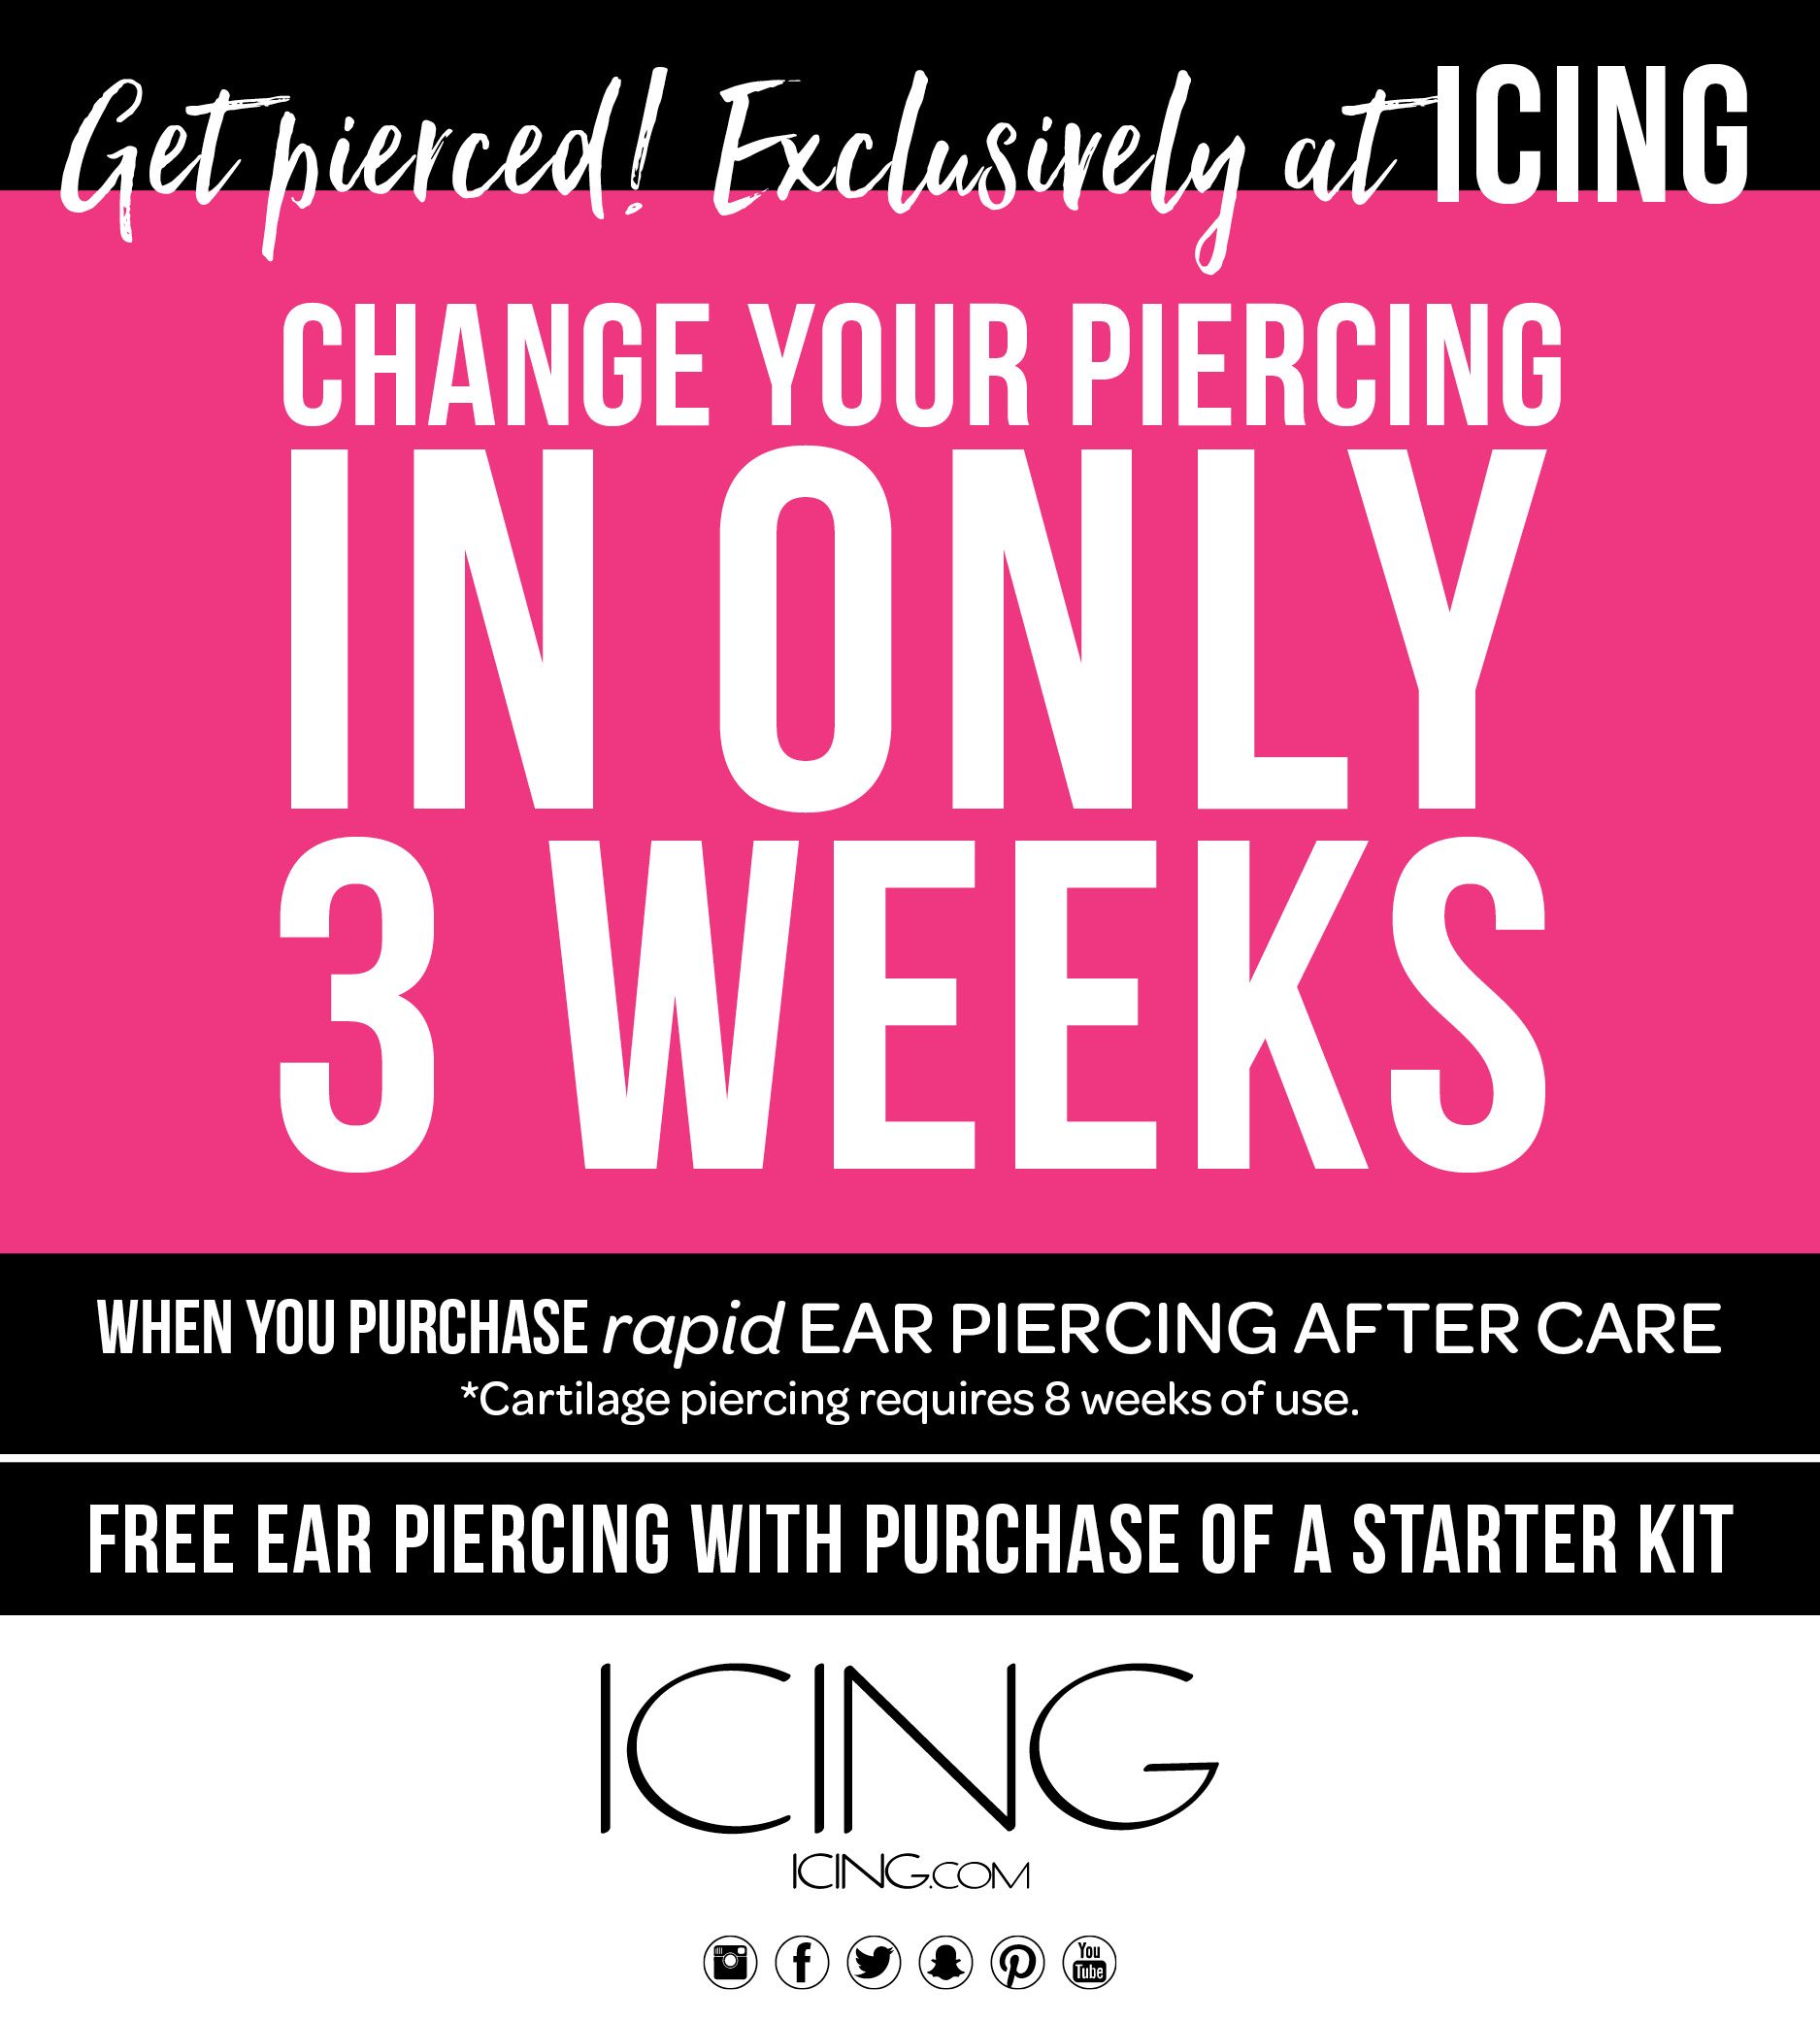 Get your ears pierced at Icings! from Icing